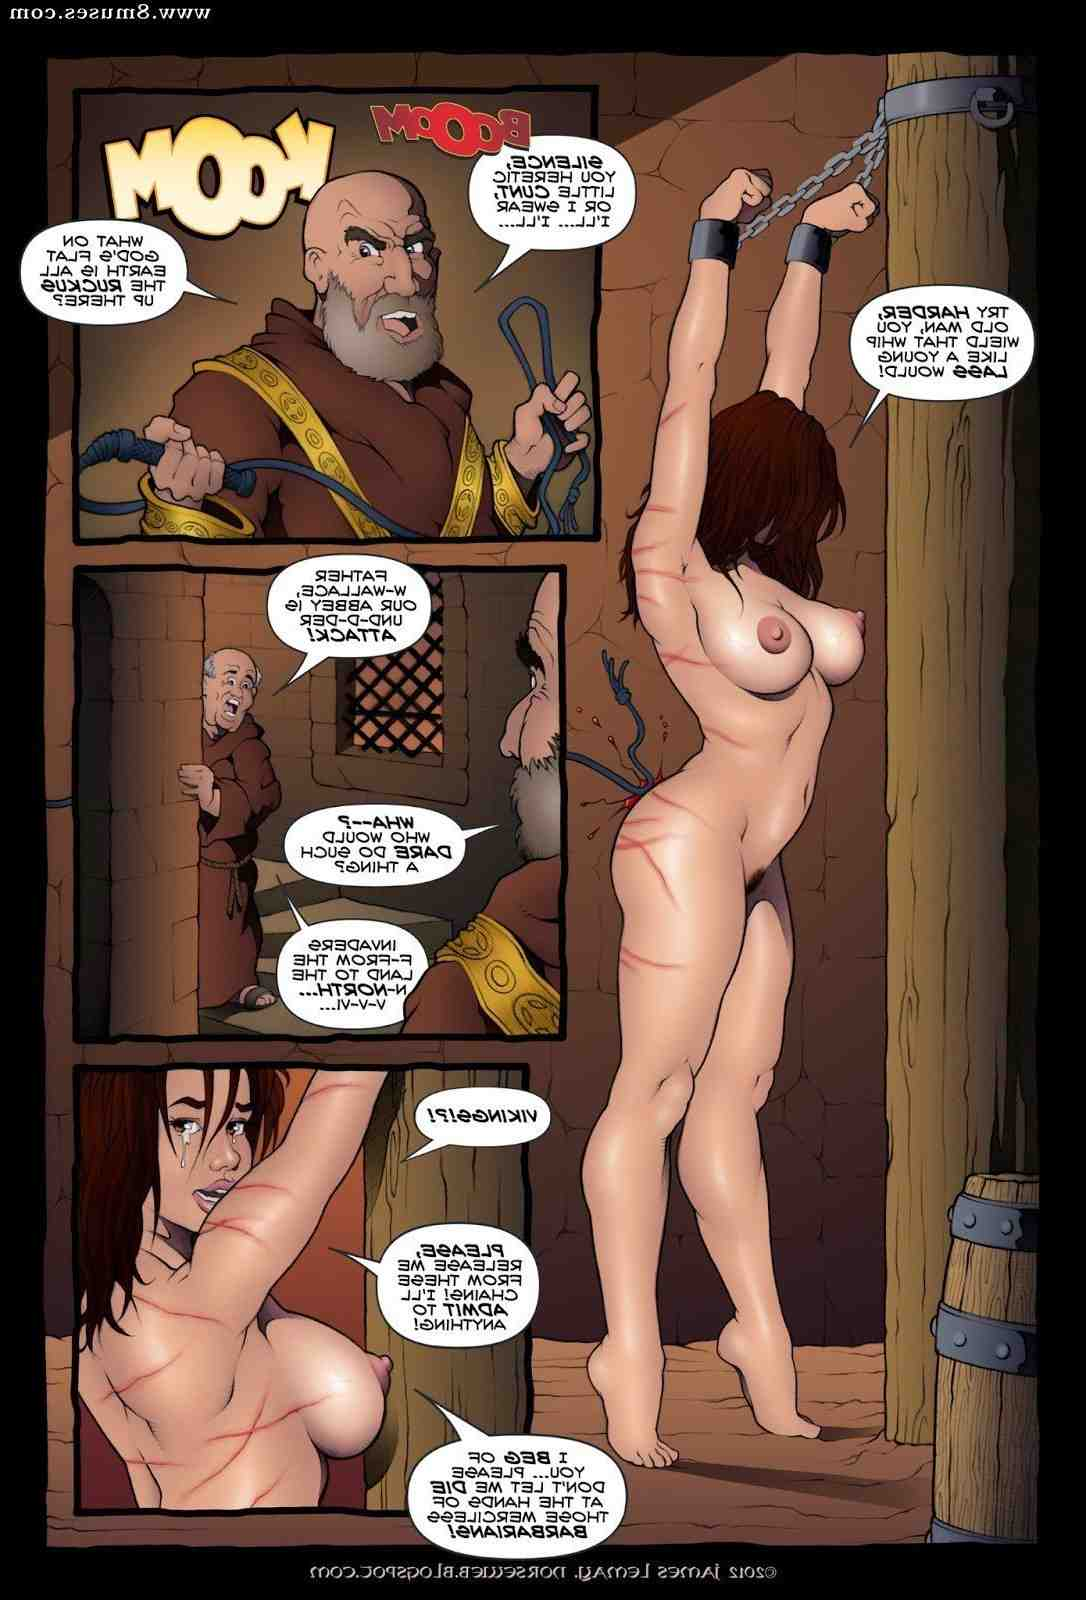 James-Lemay-Comics/Norse-Dawn-of-The-Shield-Maiden Norse_Dawn_of_The_Shield_Maiden__8muses_-_Sex_and_Porn_Comics_13.jpg